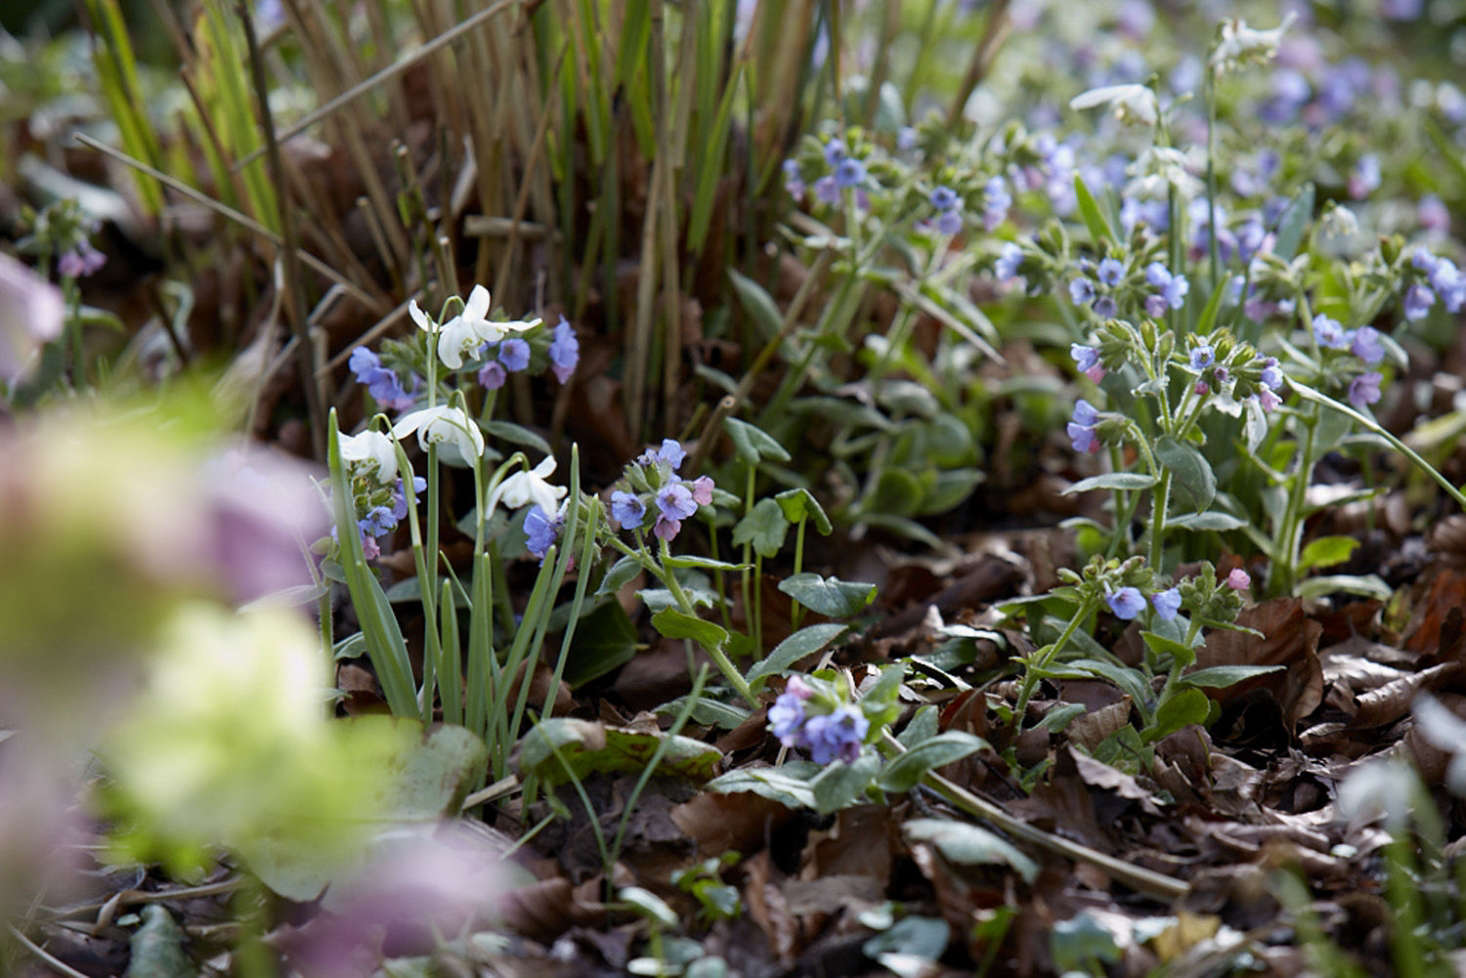 Pulmonaria makes a well-behaved, early-flowering ground cover under shrubs and deciduous trees.